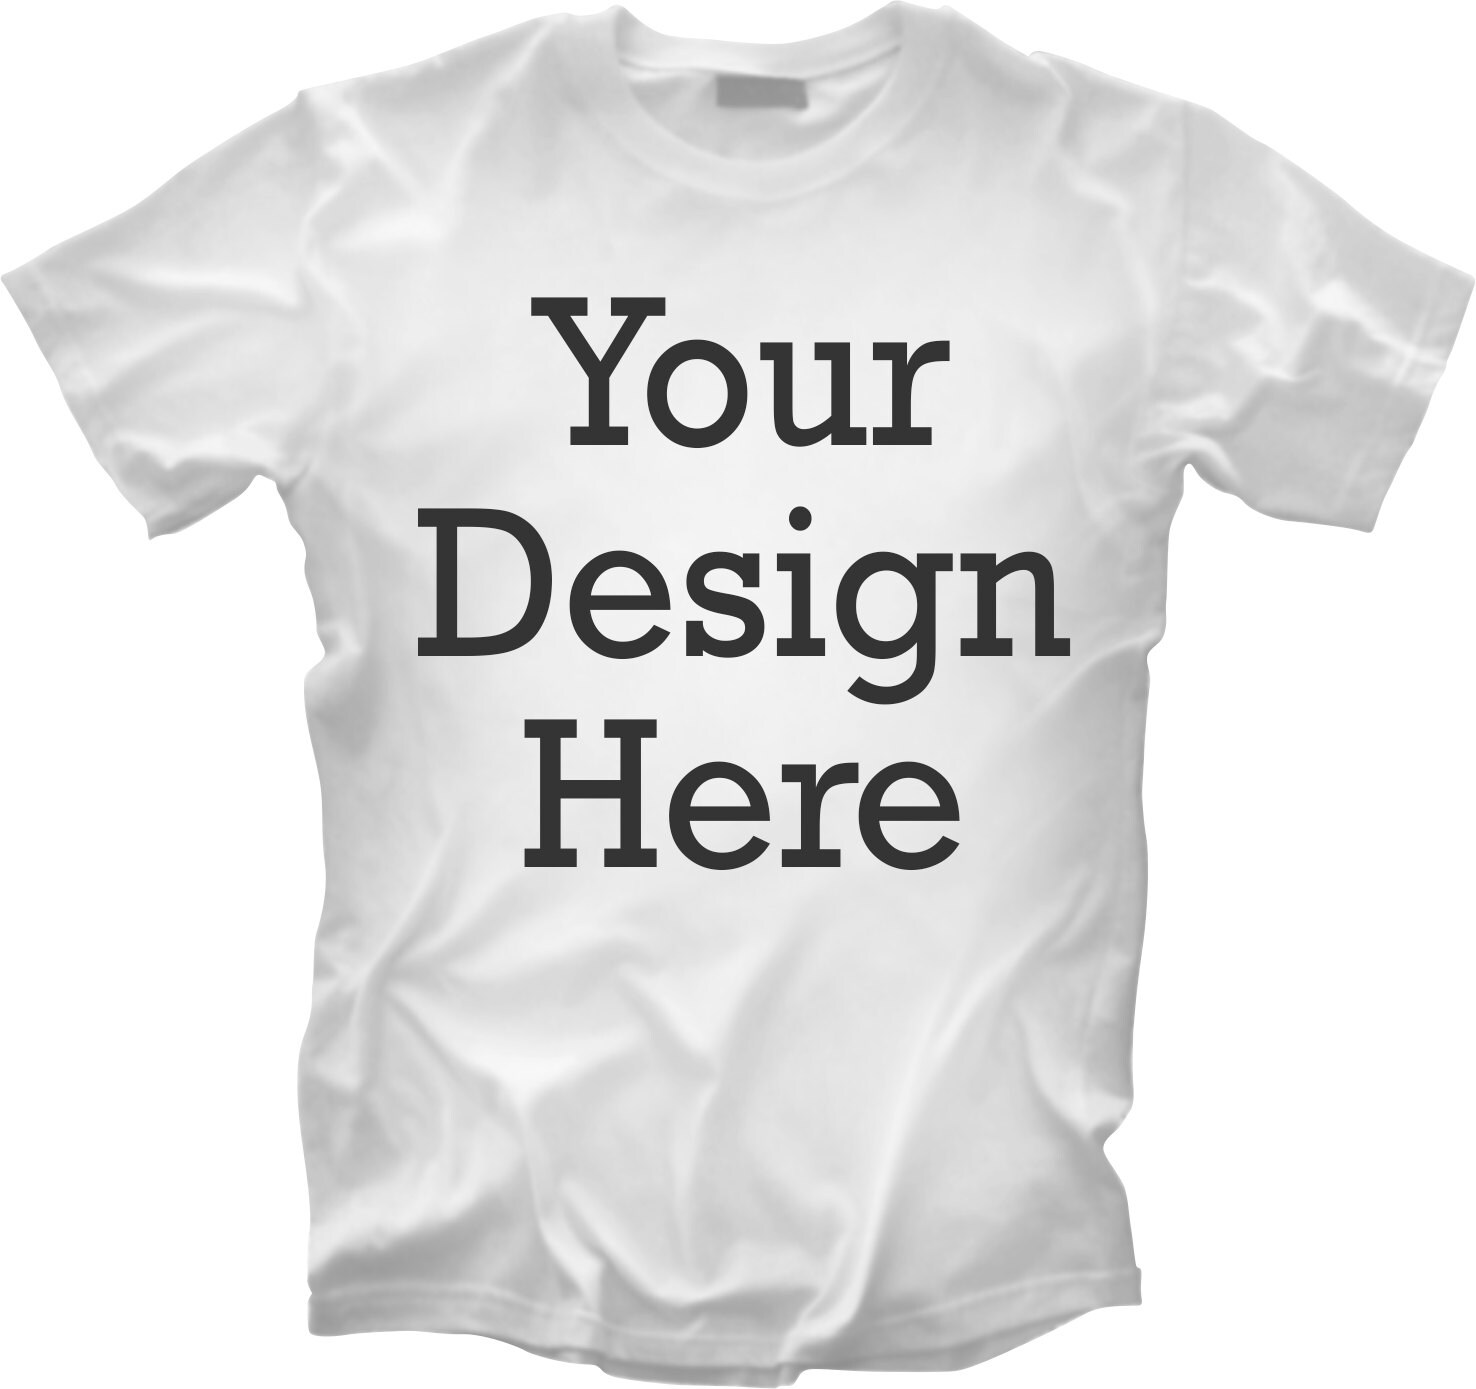 X12 Custom T Shirt One Color Design FREE SHIPPING